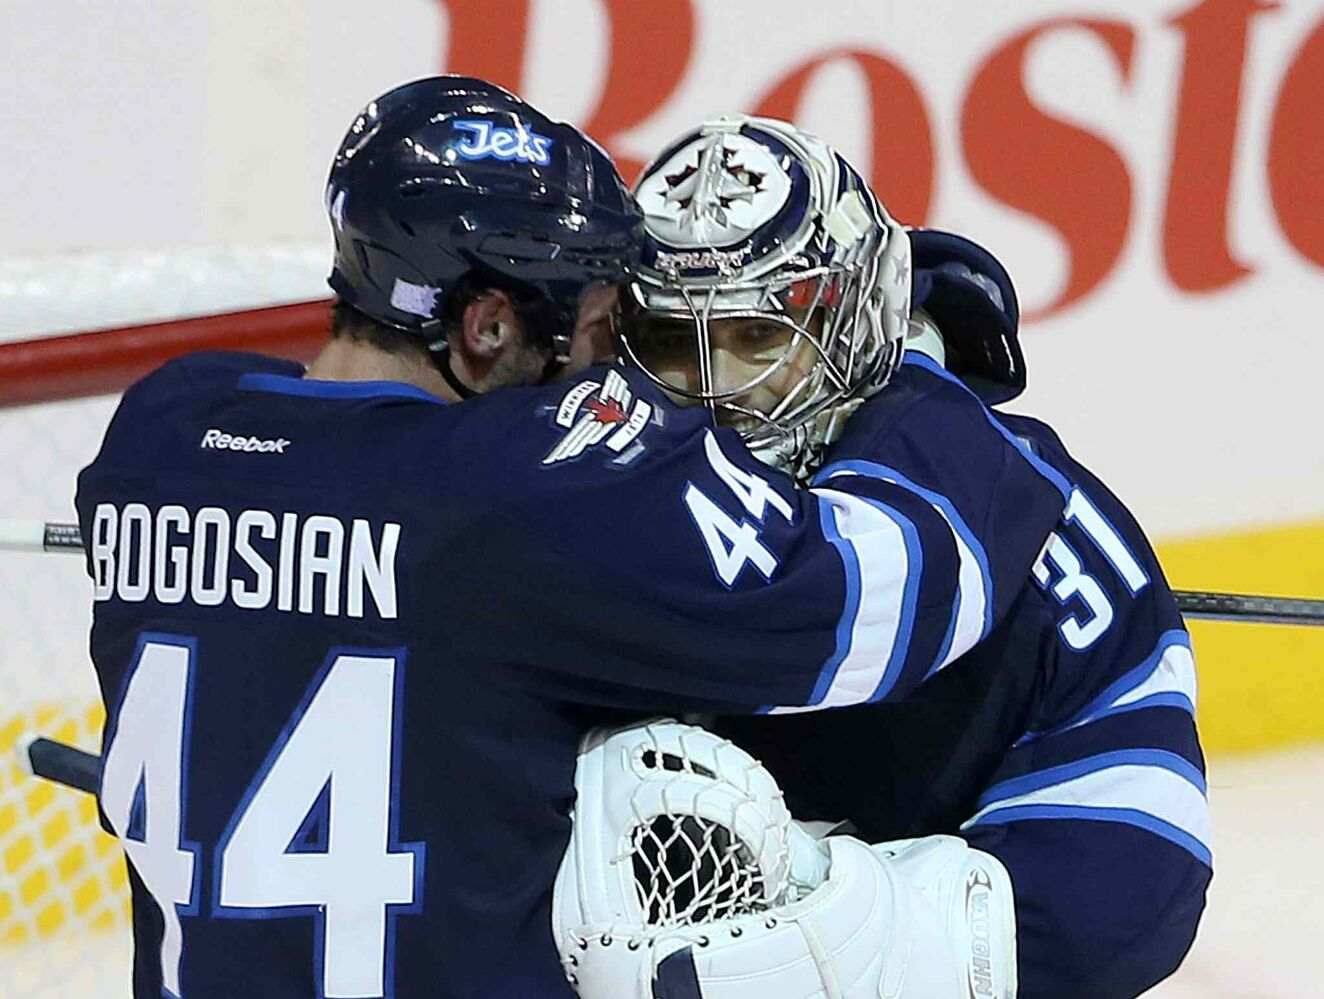 Zach Bogosian (left) celebrates with Ondrej Pavelec after the shootout. (TREVOR HAGAN / WINNIPEG FREE PRESS)